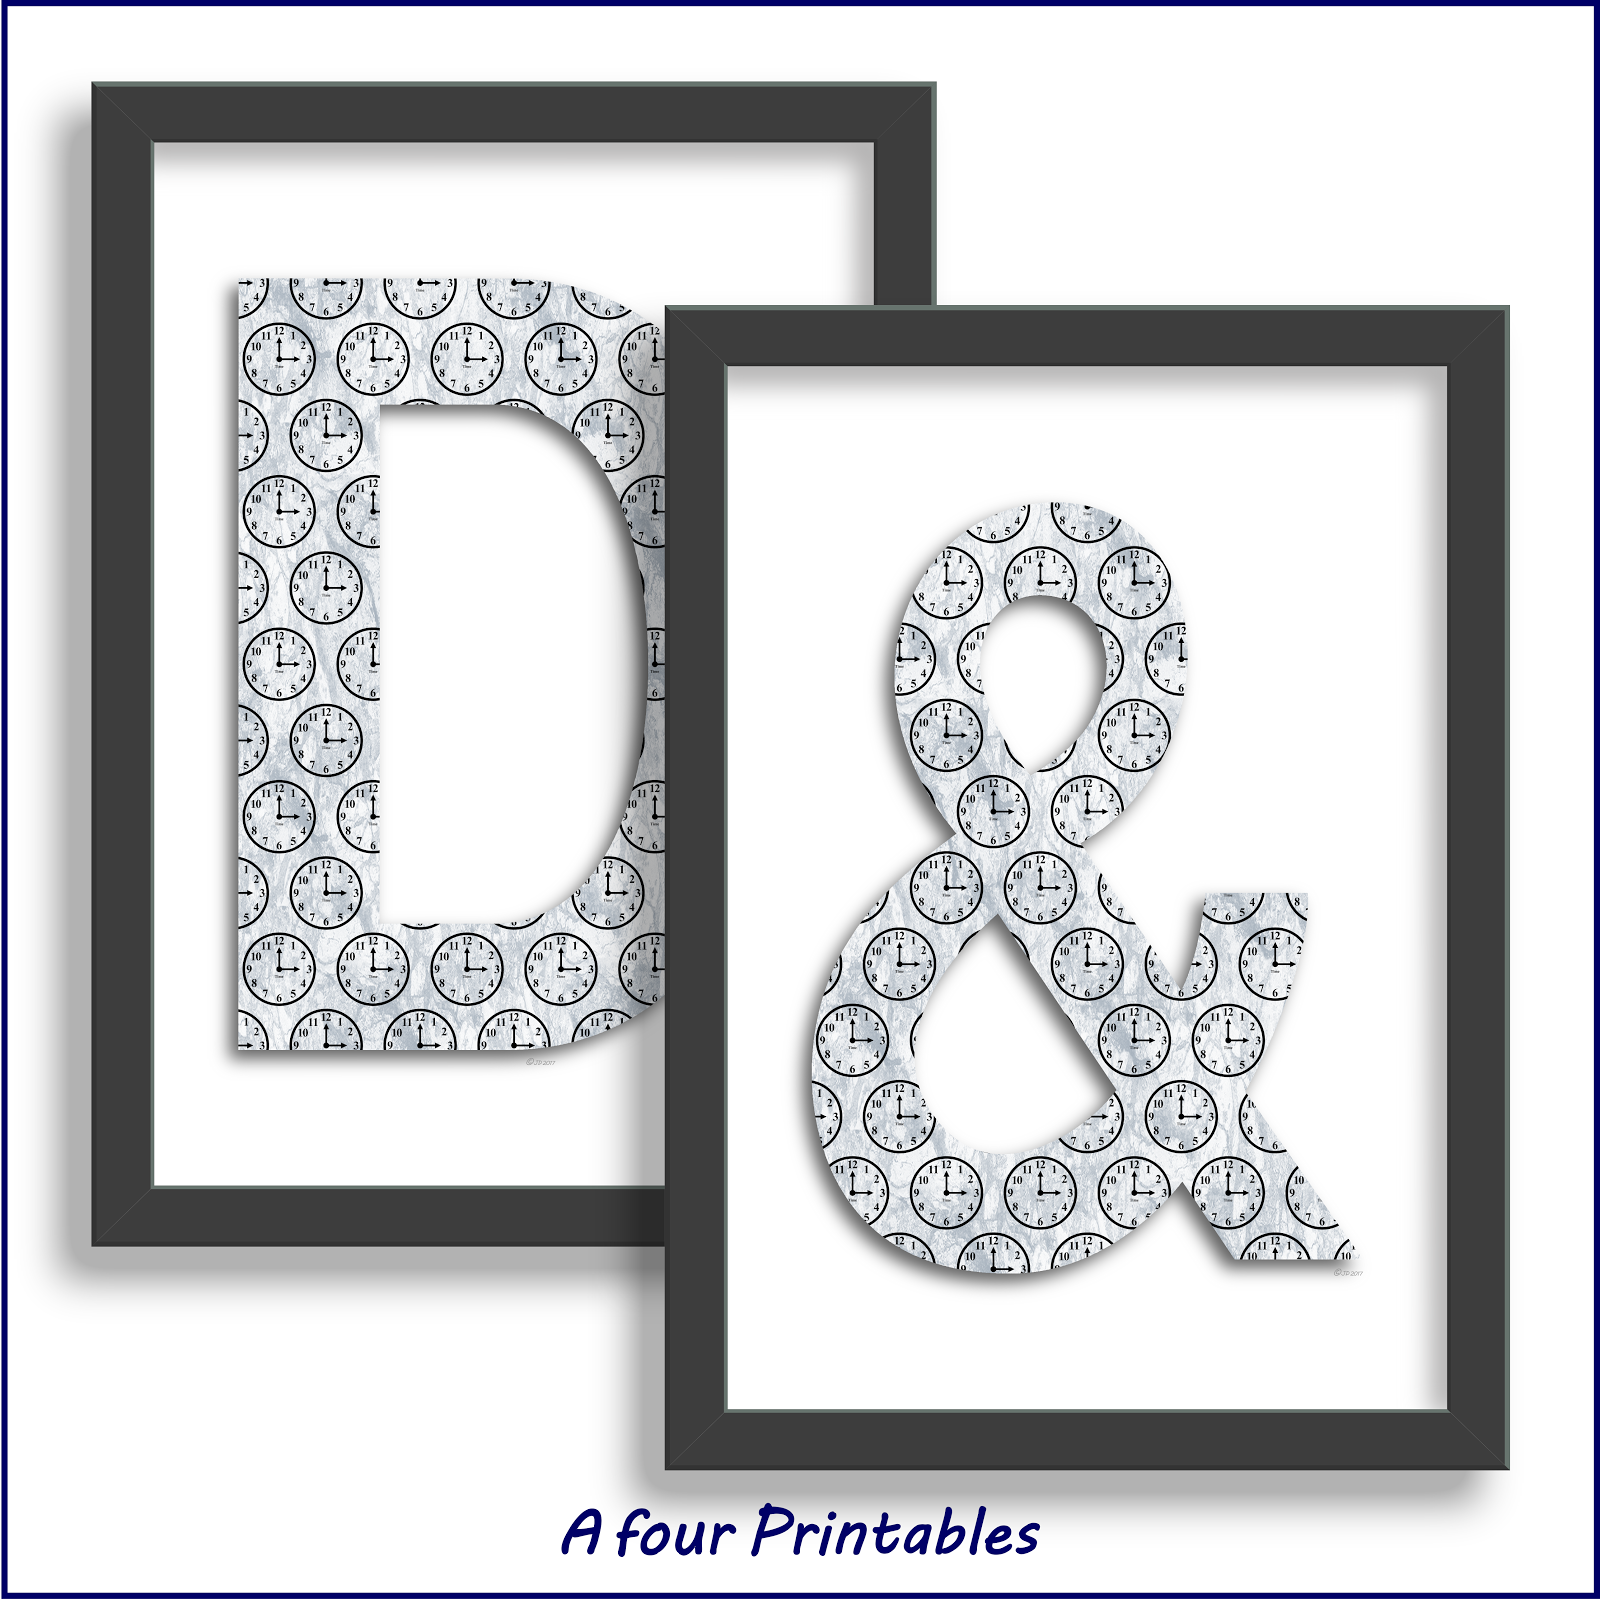 A4 printable monograms, ampersand letters or initials marble effect with black clock faces.